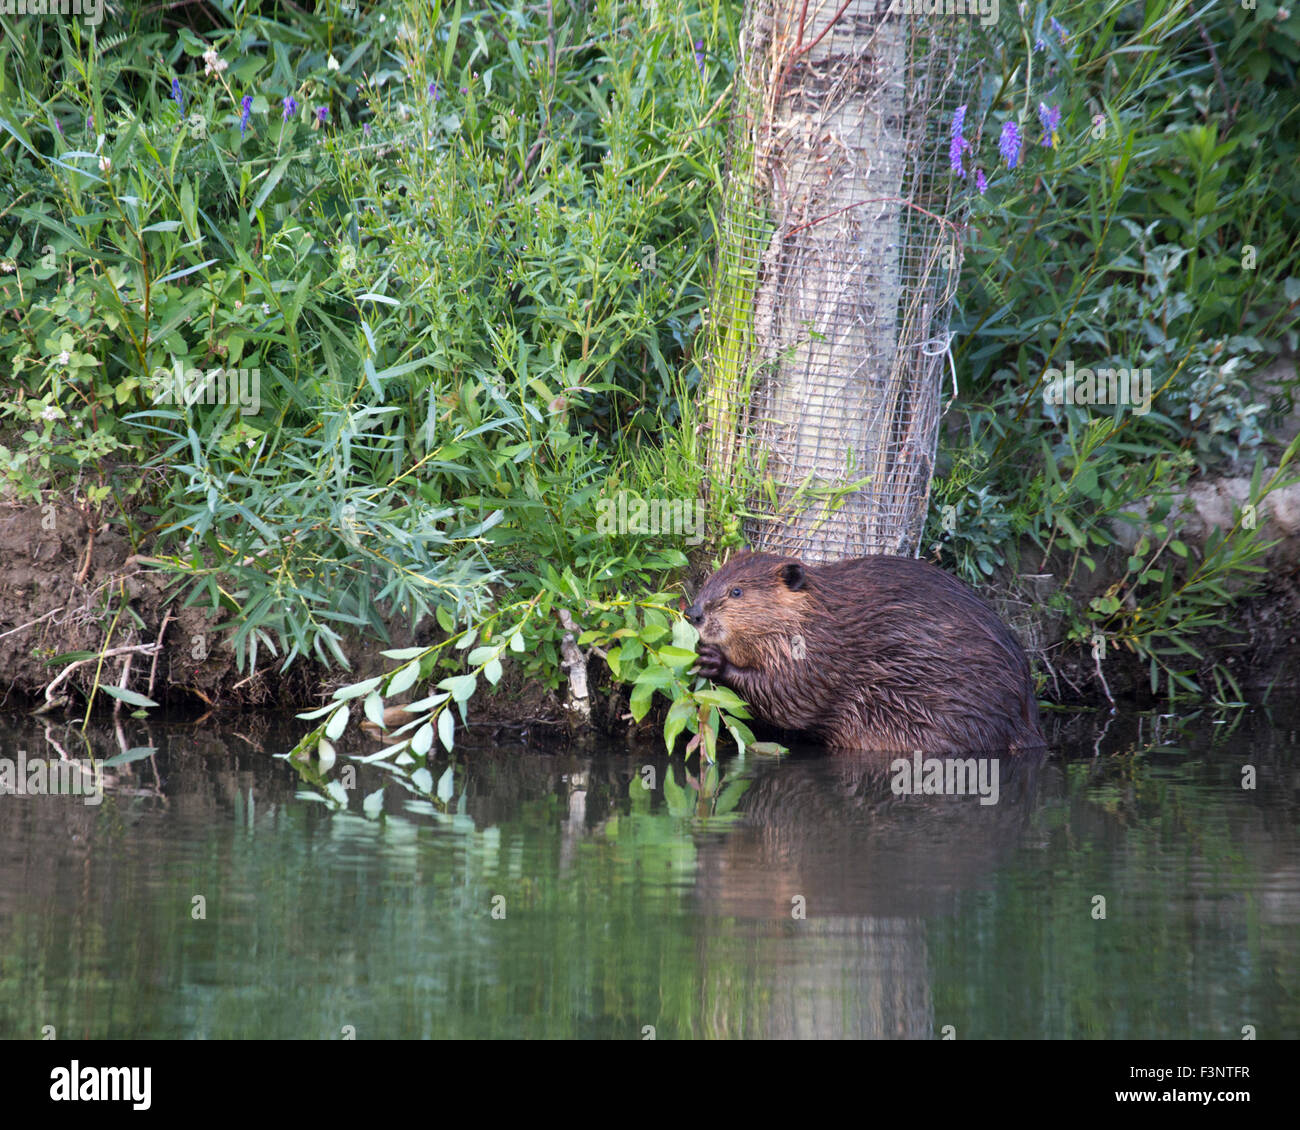 Beaver (Castor canadensis) eating shrub beside Trembling Aspen tree (Populus tremuloides) wrapped in wire for protection - Stock Image